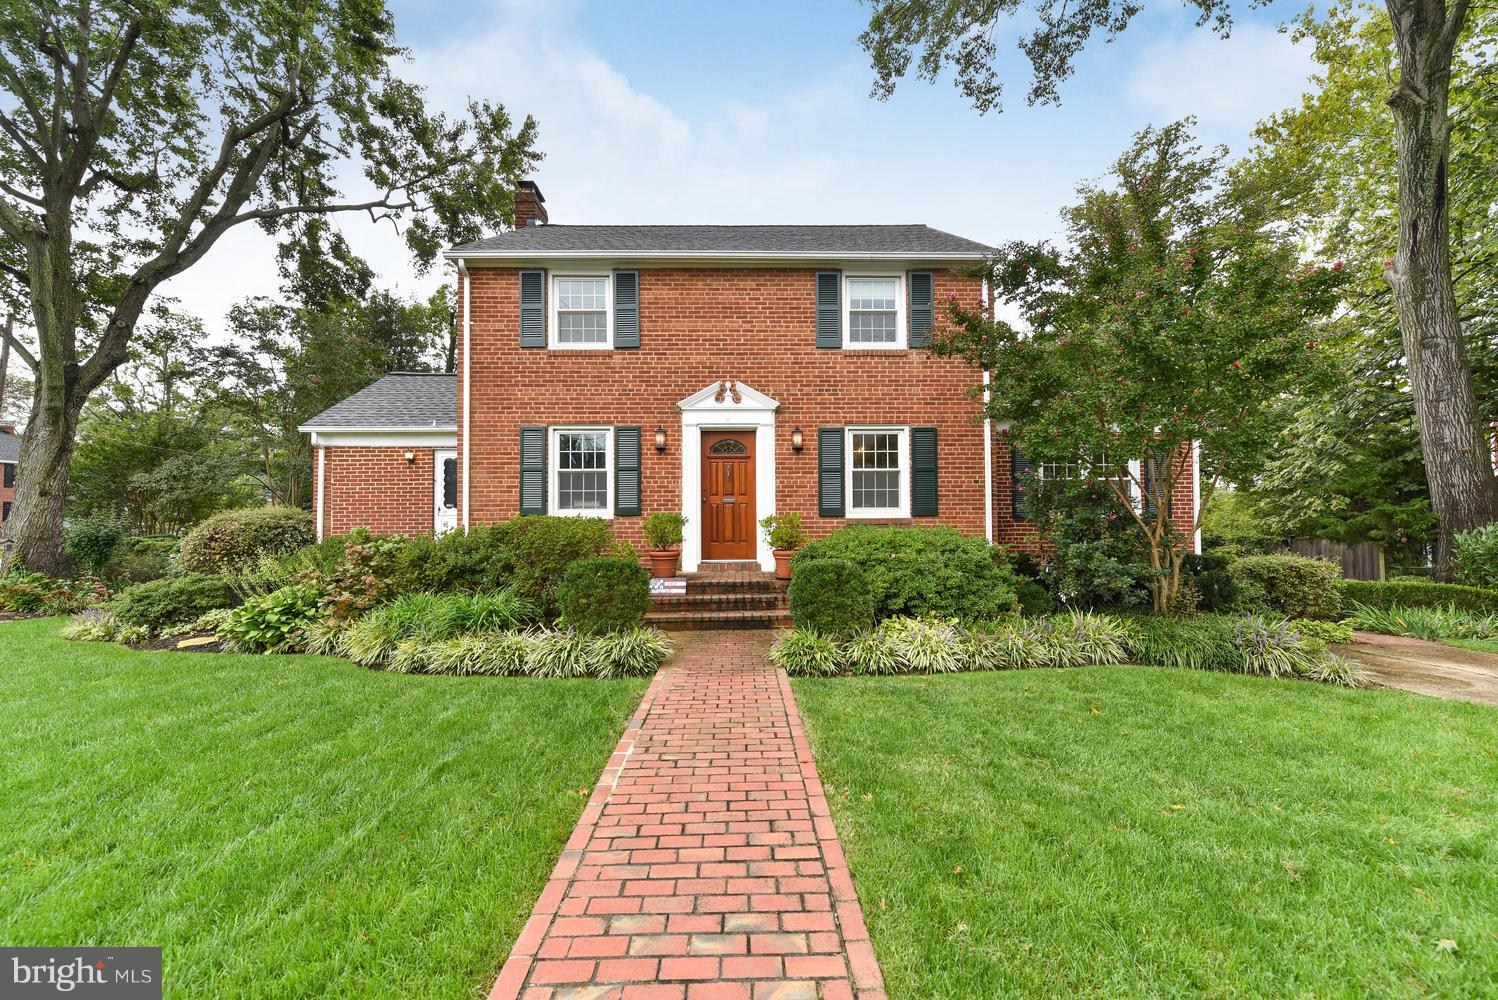 Make yourself at home in this charming bygone era Colonial near historic Old Town! Built on a large corner lot & enhanced w/prof. landscaping. Walk-in & admire classic features; HWF, chair rail, WBFP & arched doorways. Formal rooms encourage entertaining. Sunroom=enjoyment year-round+offers brick accent wall. Convenience of ML BR+BA. Updated KIT. LL is a blank canvas. Off/St parking&close to metro